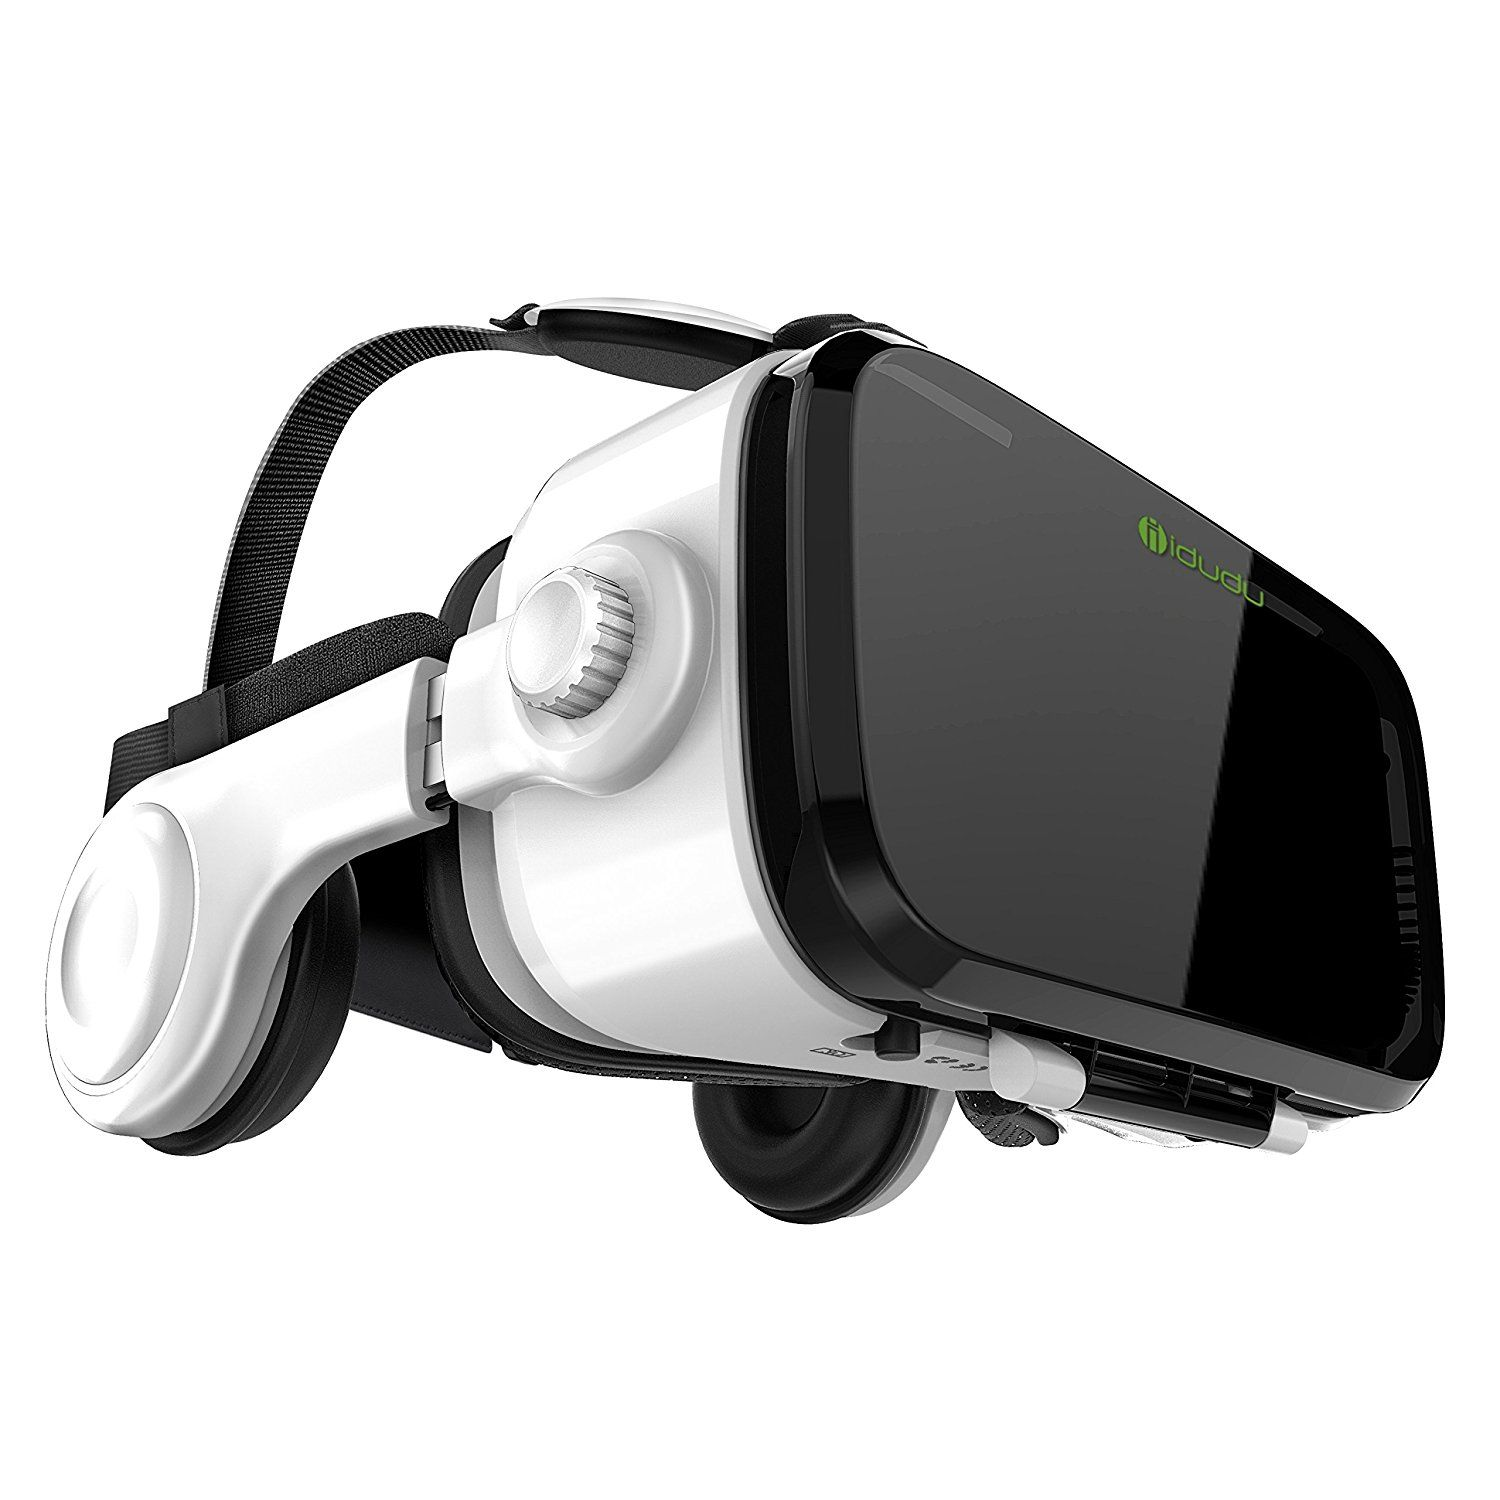 ee8ff4a643f 10 Best Virtual reality Headsets you can buy in 2018